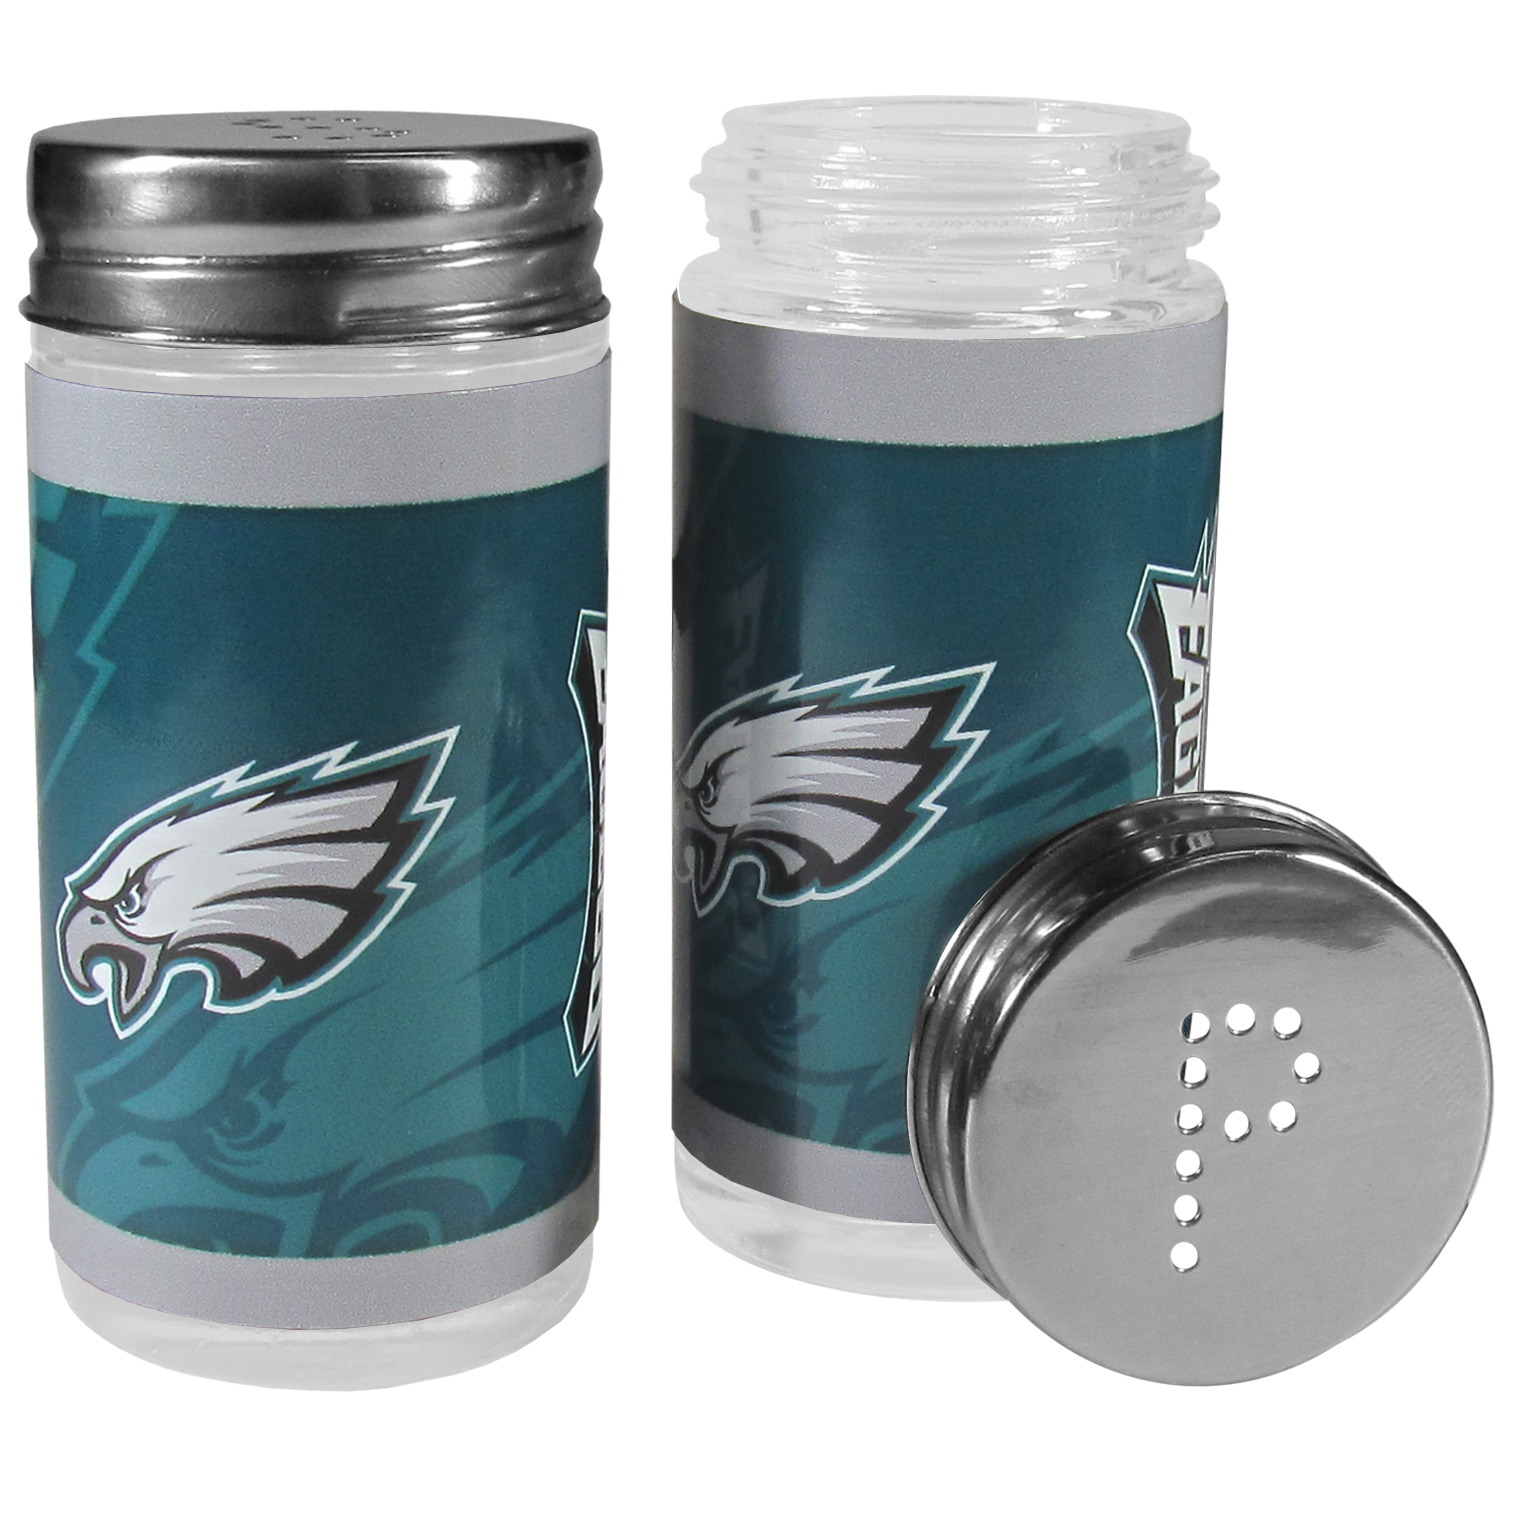 Philadelphia Eagles Tailgater Salt and Pepper Shakers - No tailgate party is complete without your Philadelphia Eagles salt & pepper shakers featuring bright team graphics. The glass shakers are 3.75 inches tall and the screw top lids have holes that spell out P and S. These team shakers are a great grill accessory whether you are barbecuing on the patio, picnicing or having a game day party.